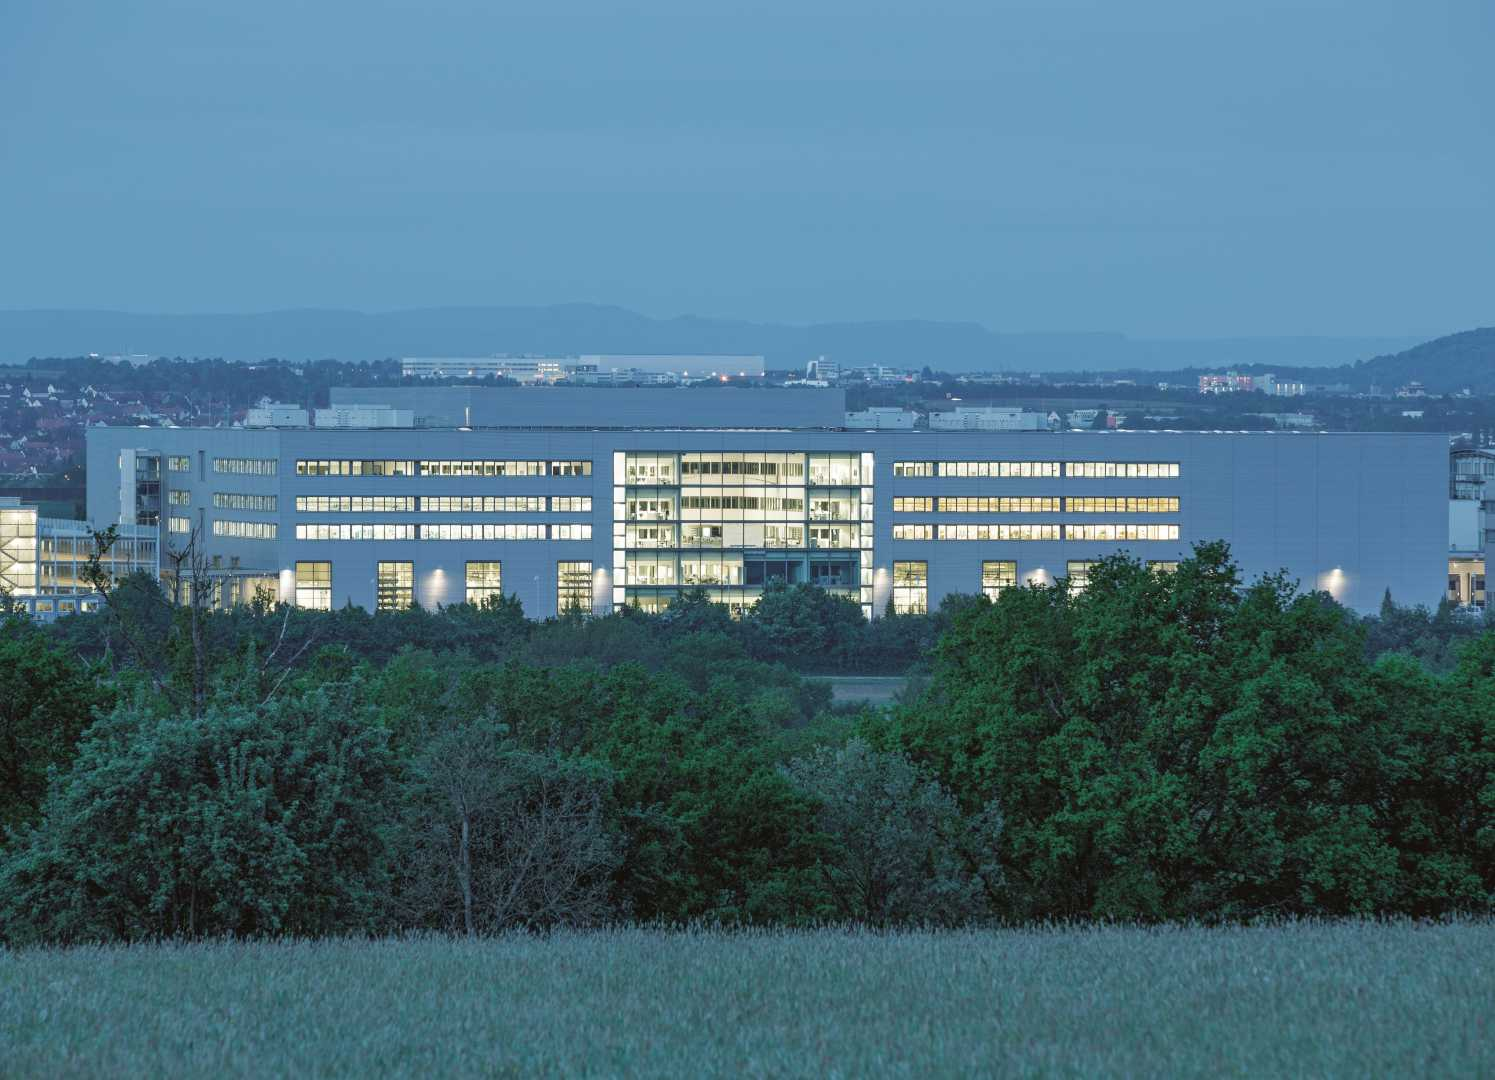 The Scharnhausen Technology Plant – Festo's main site for the production of valves, valve terminals and electronics.